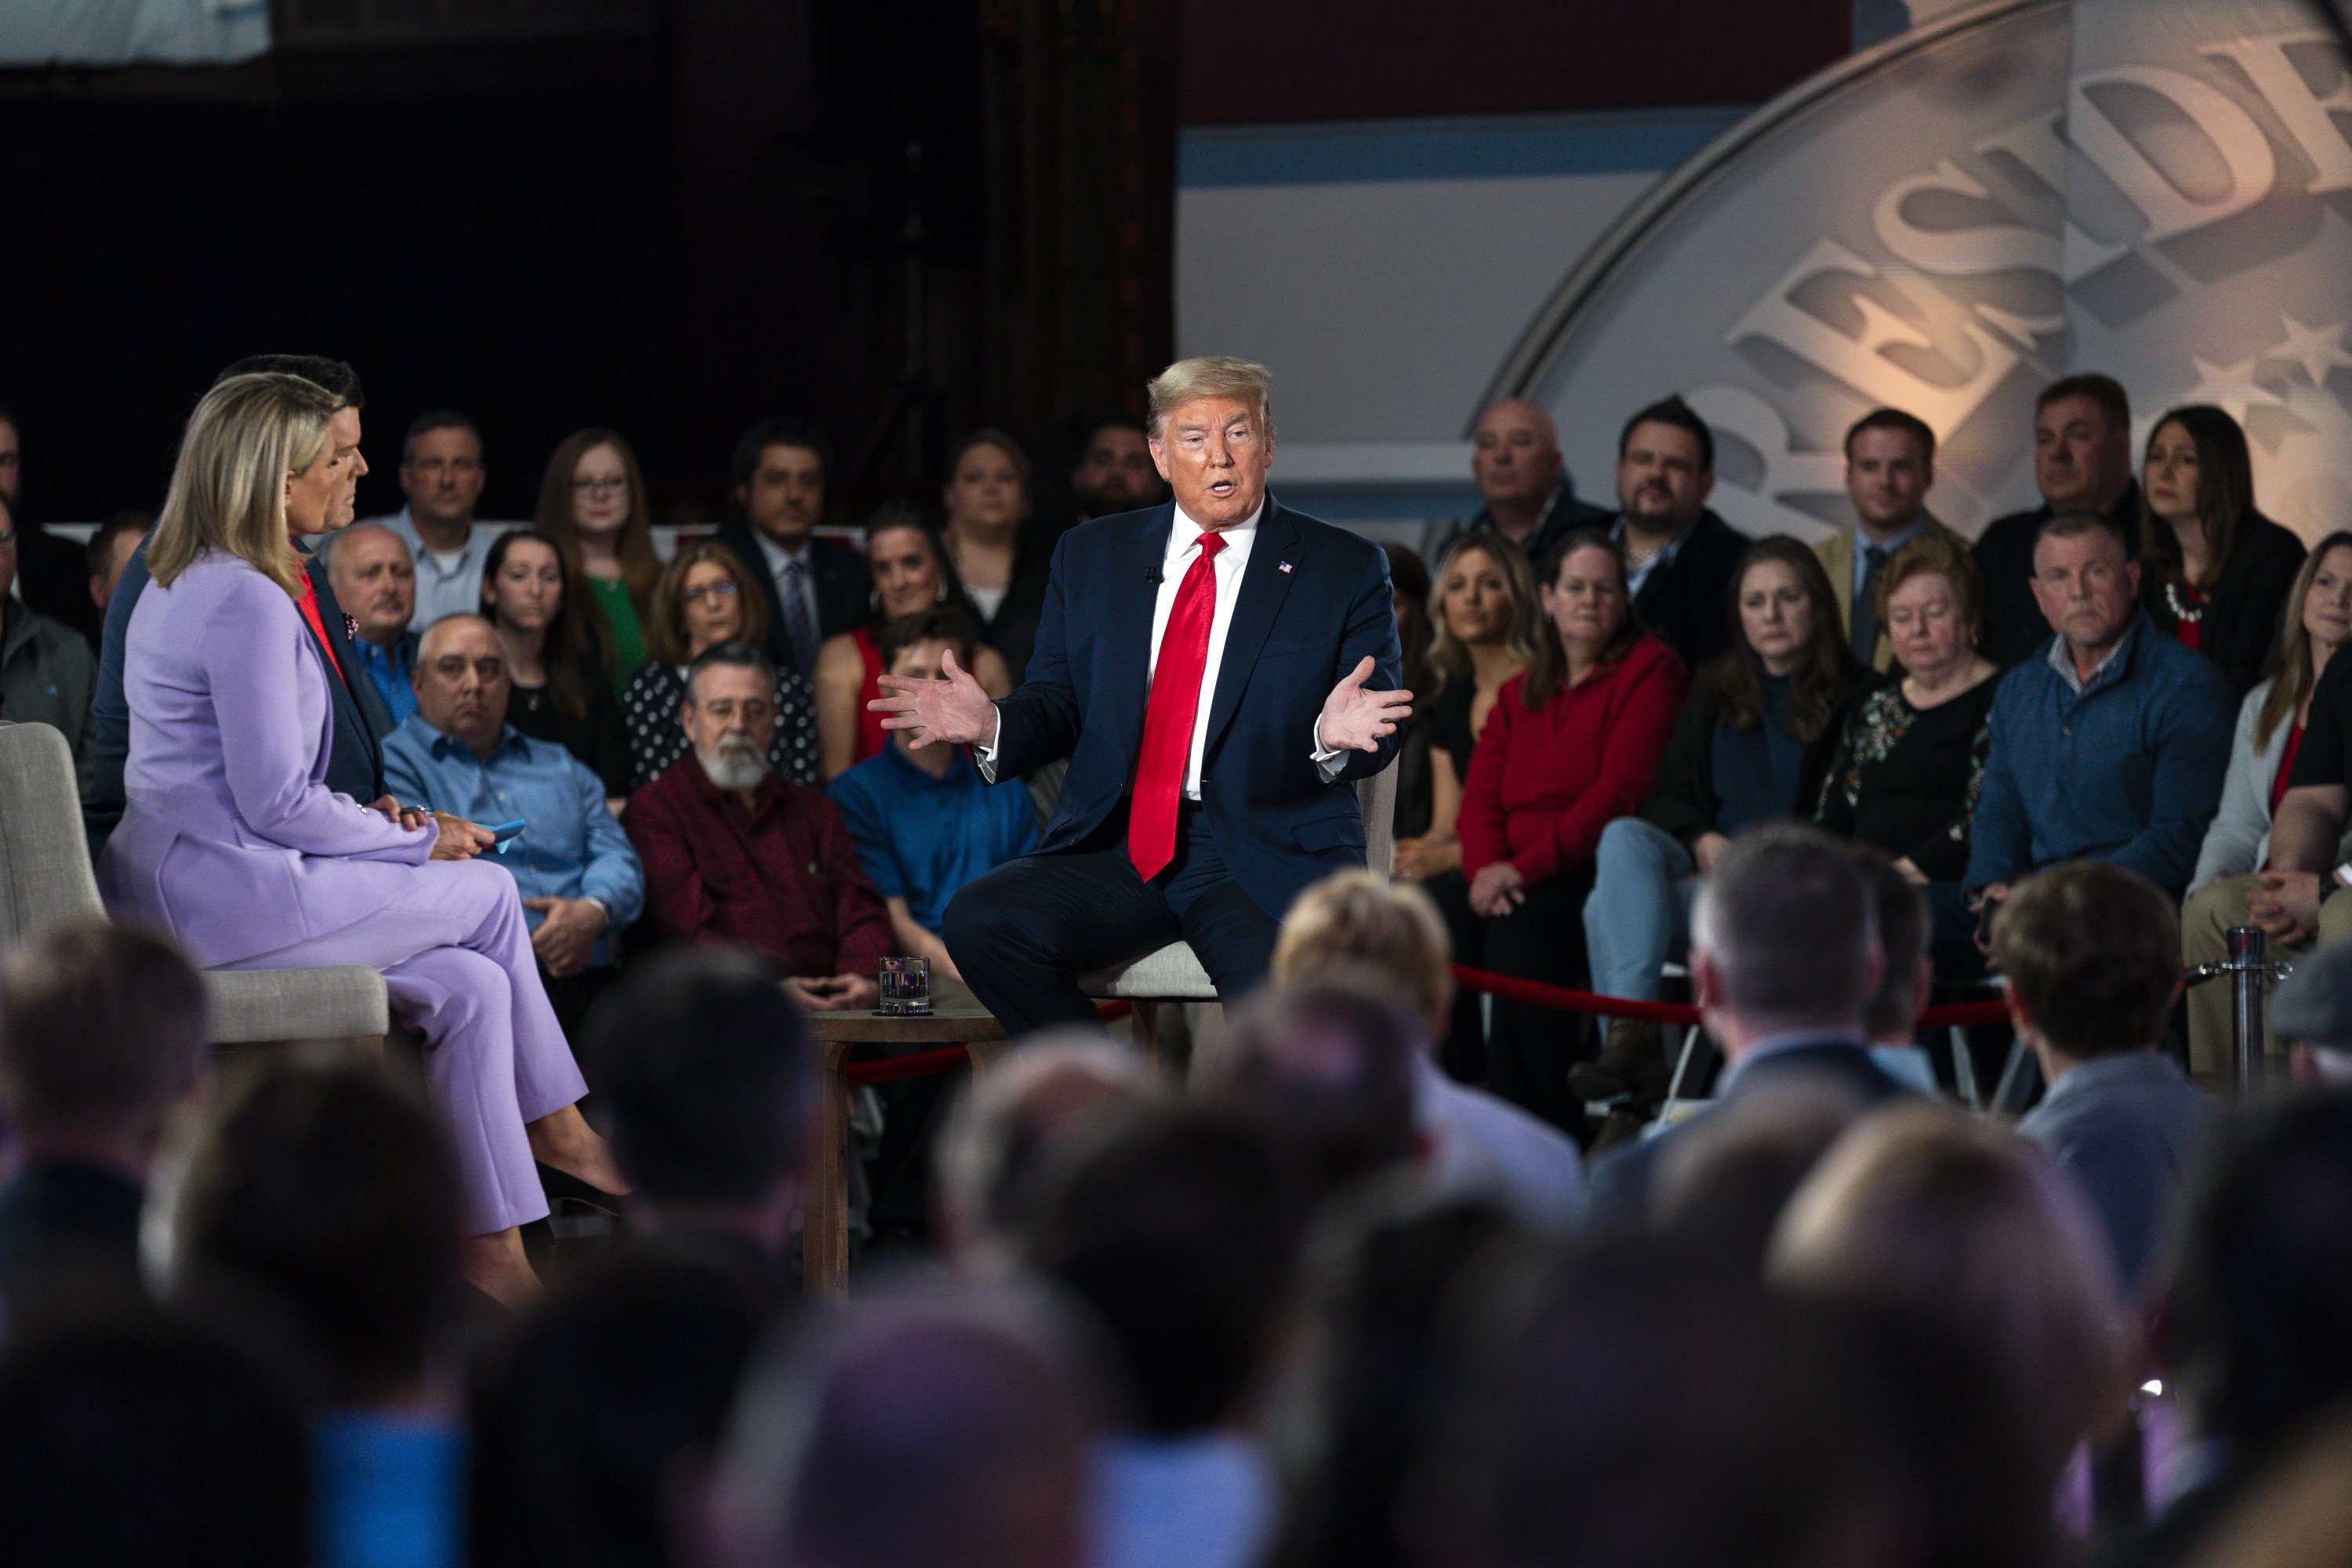 Trump Defends His Rhetoric In 1st Tv Town Hall Of 2020